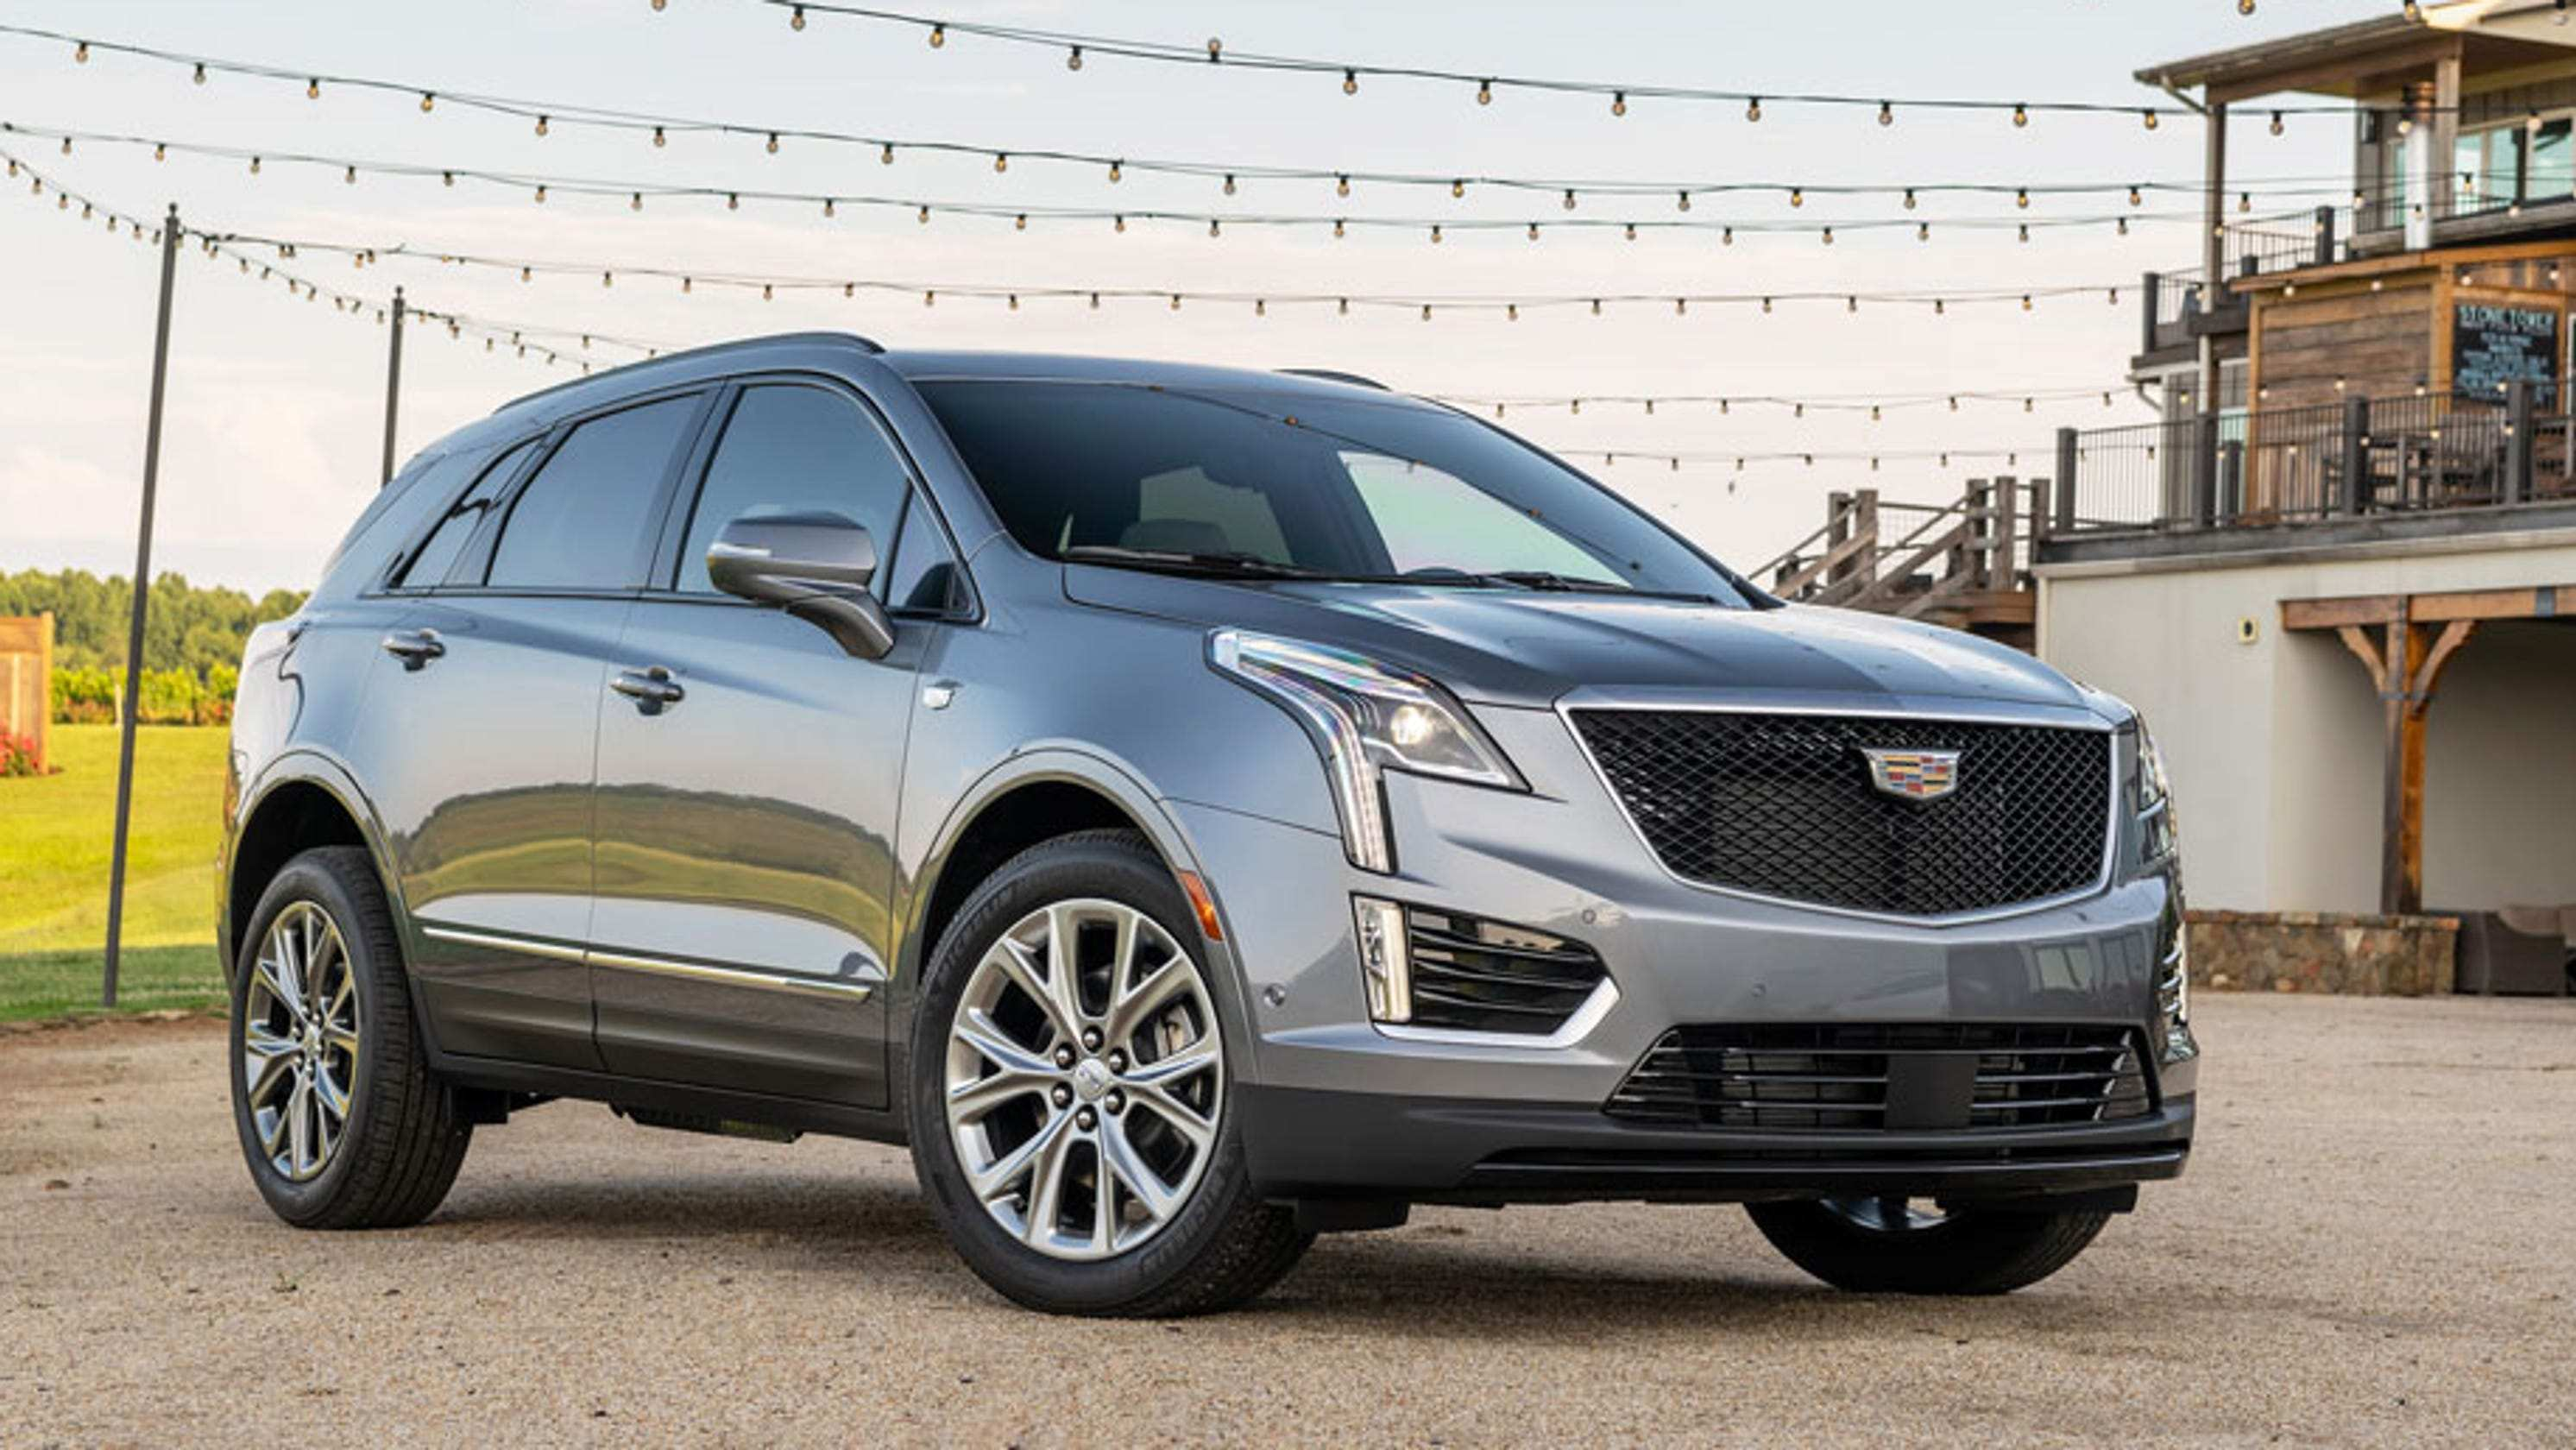 74 The Best 2020 Cadillac Xt5 Pictures Specs And Review